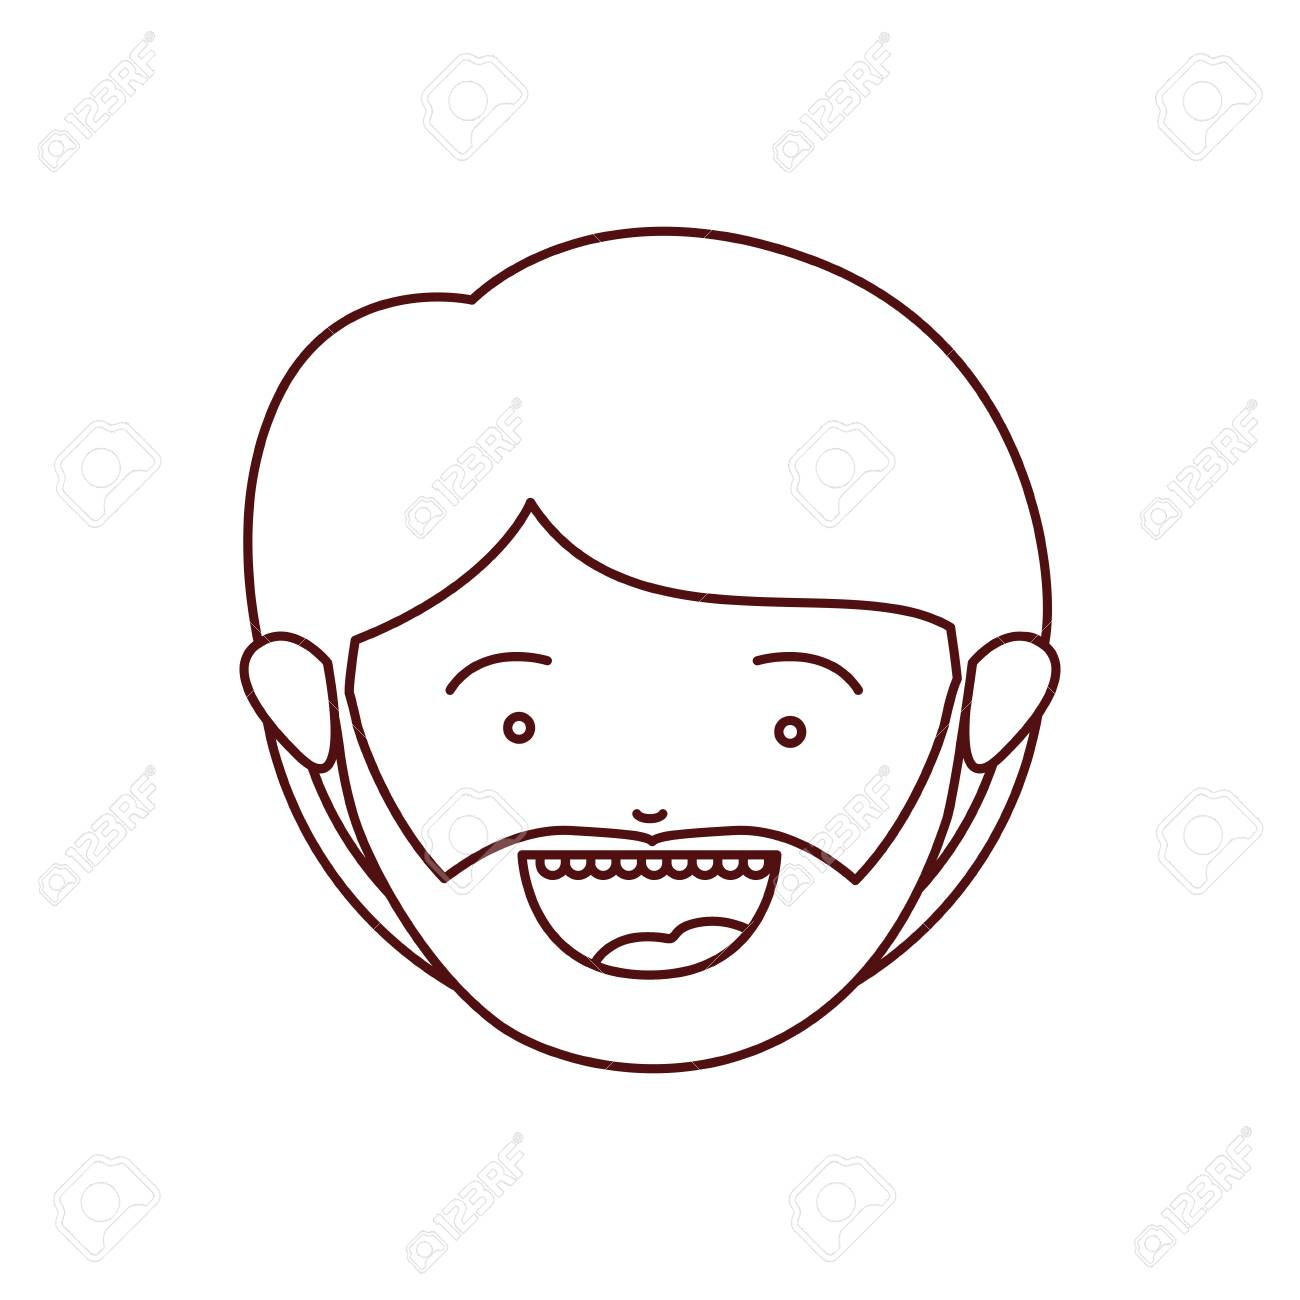 1300x1300 Brown Color Contour Of Smiling Face Of Man With Beard And Mustache